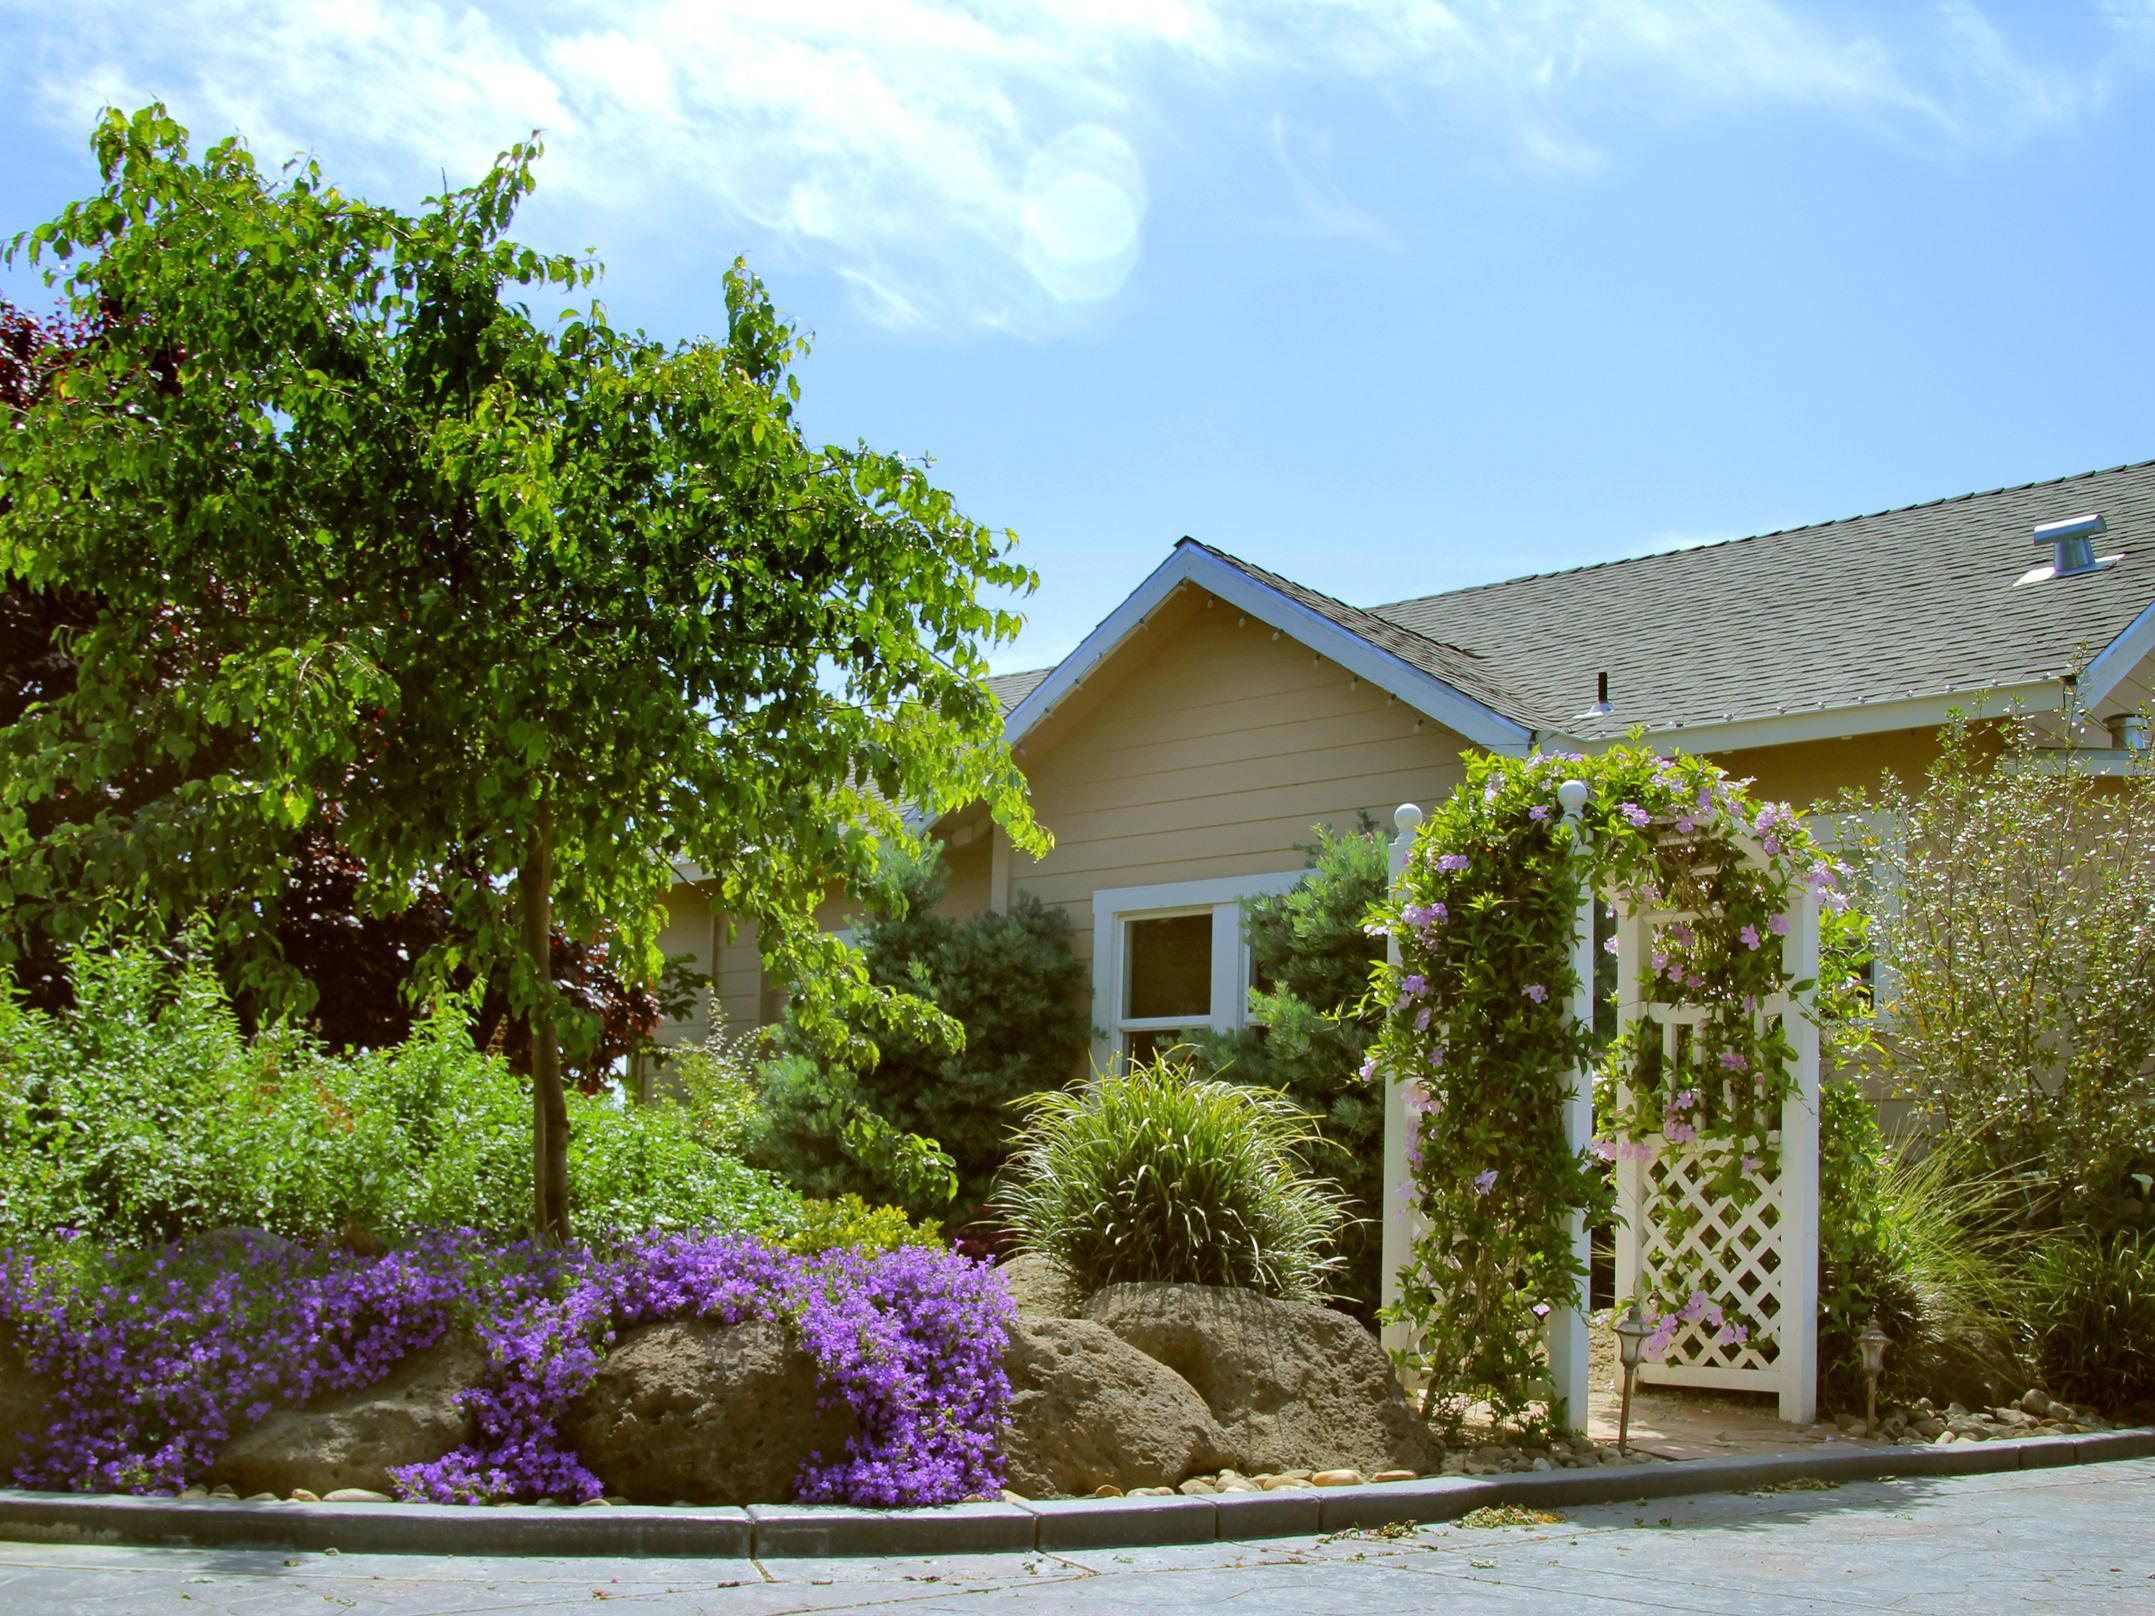 The Pinot Noir Cottage